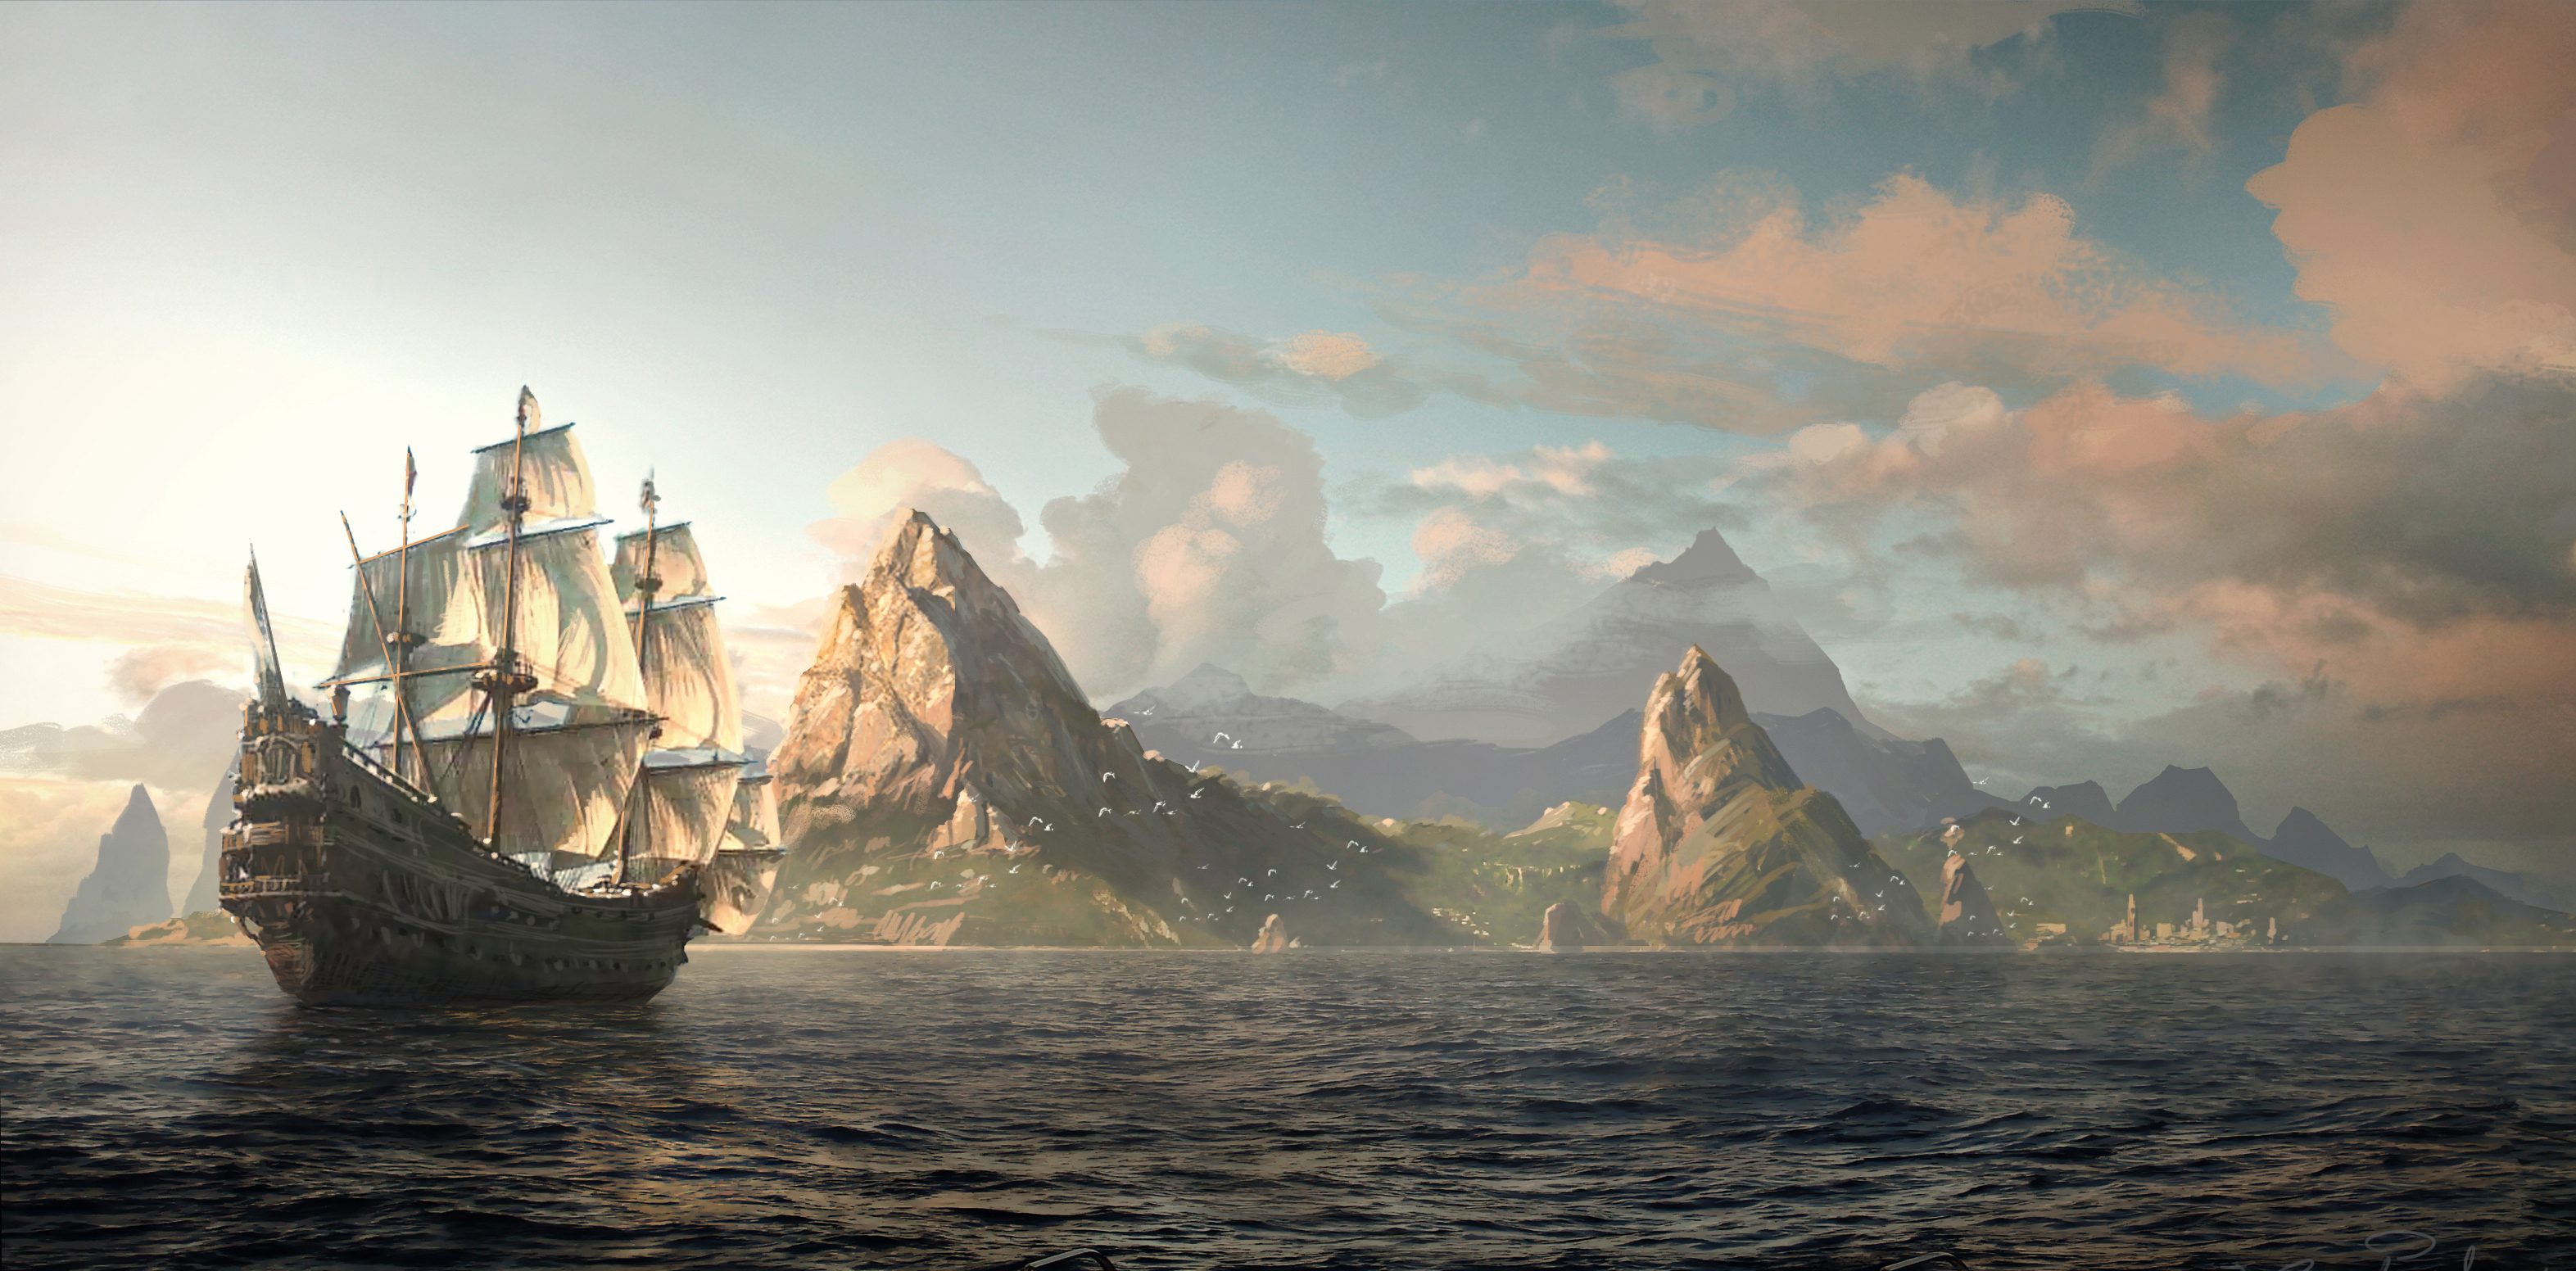 Assassins Creed IV Black Flag Official Images + Trailers pic 1